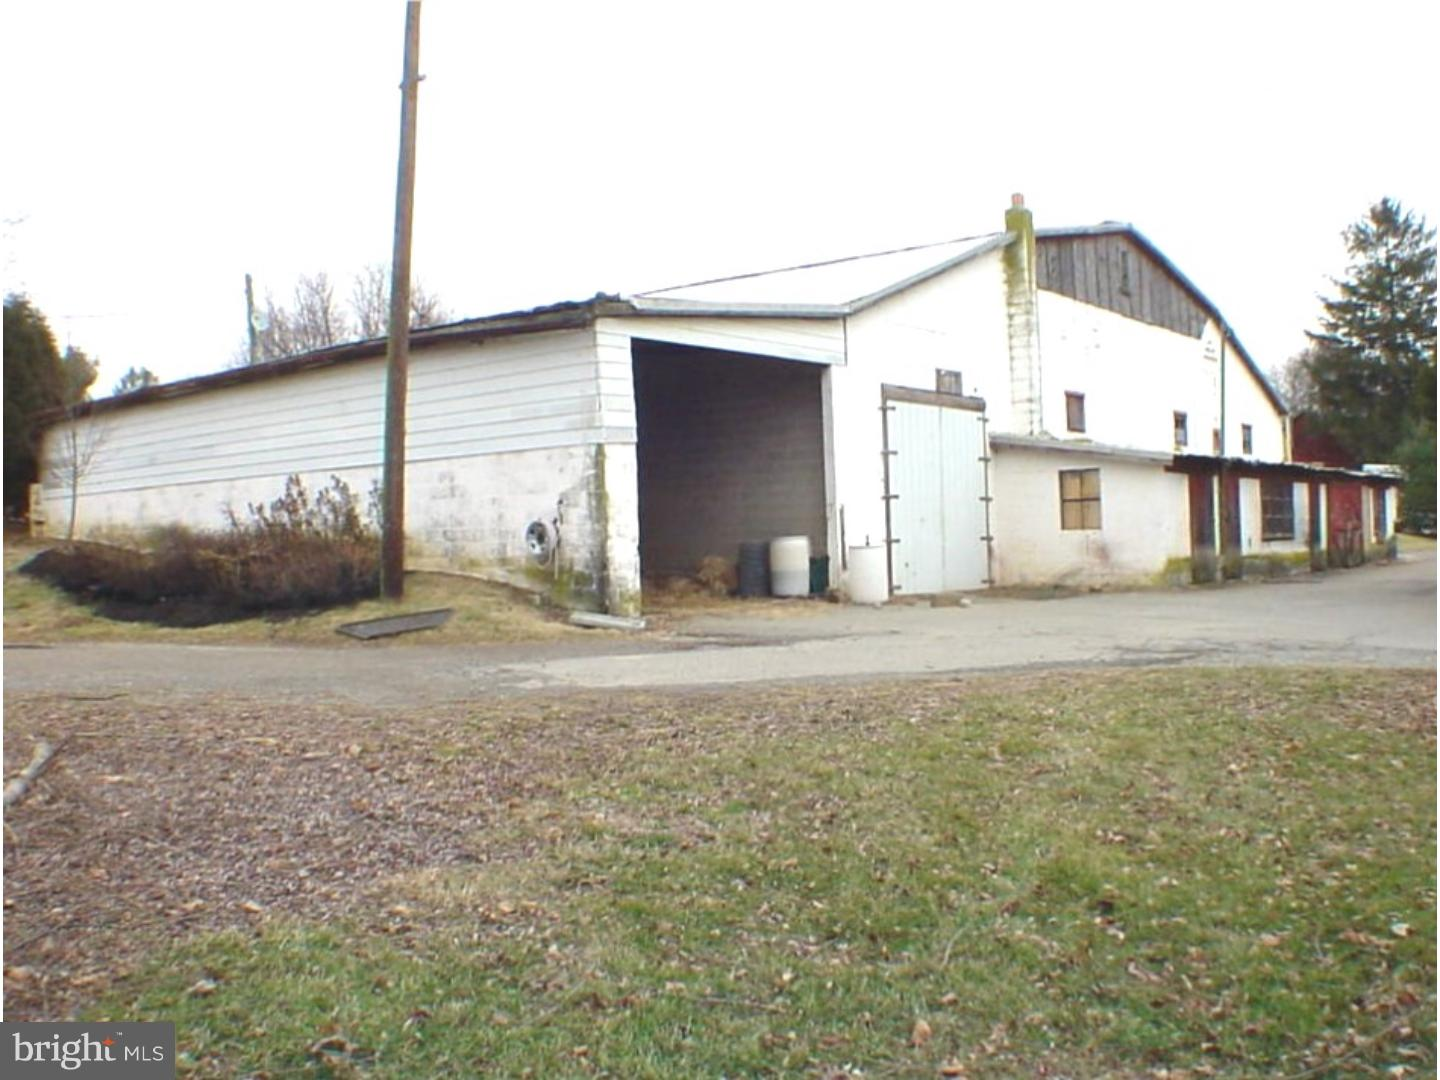 For Rent - 3300sqft concrete block building with 12ft wide doors. Great for storage or small work shop. Parking for 4-6 cars outside on the gravel lot. Also an additional 2460sqft section for rent for $400/month,